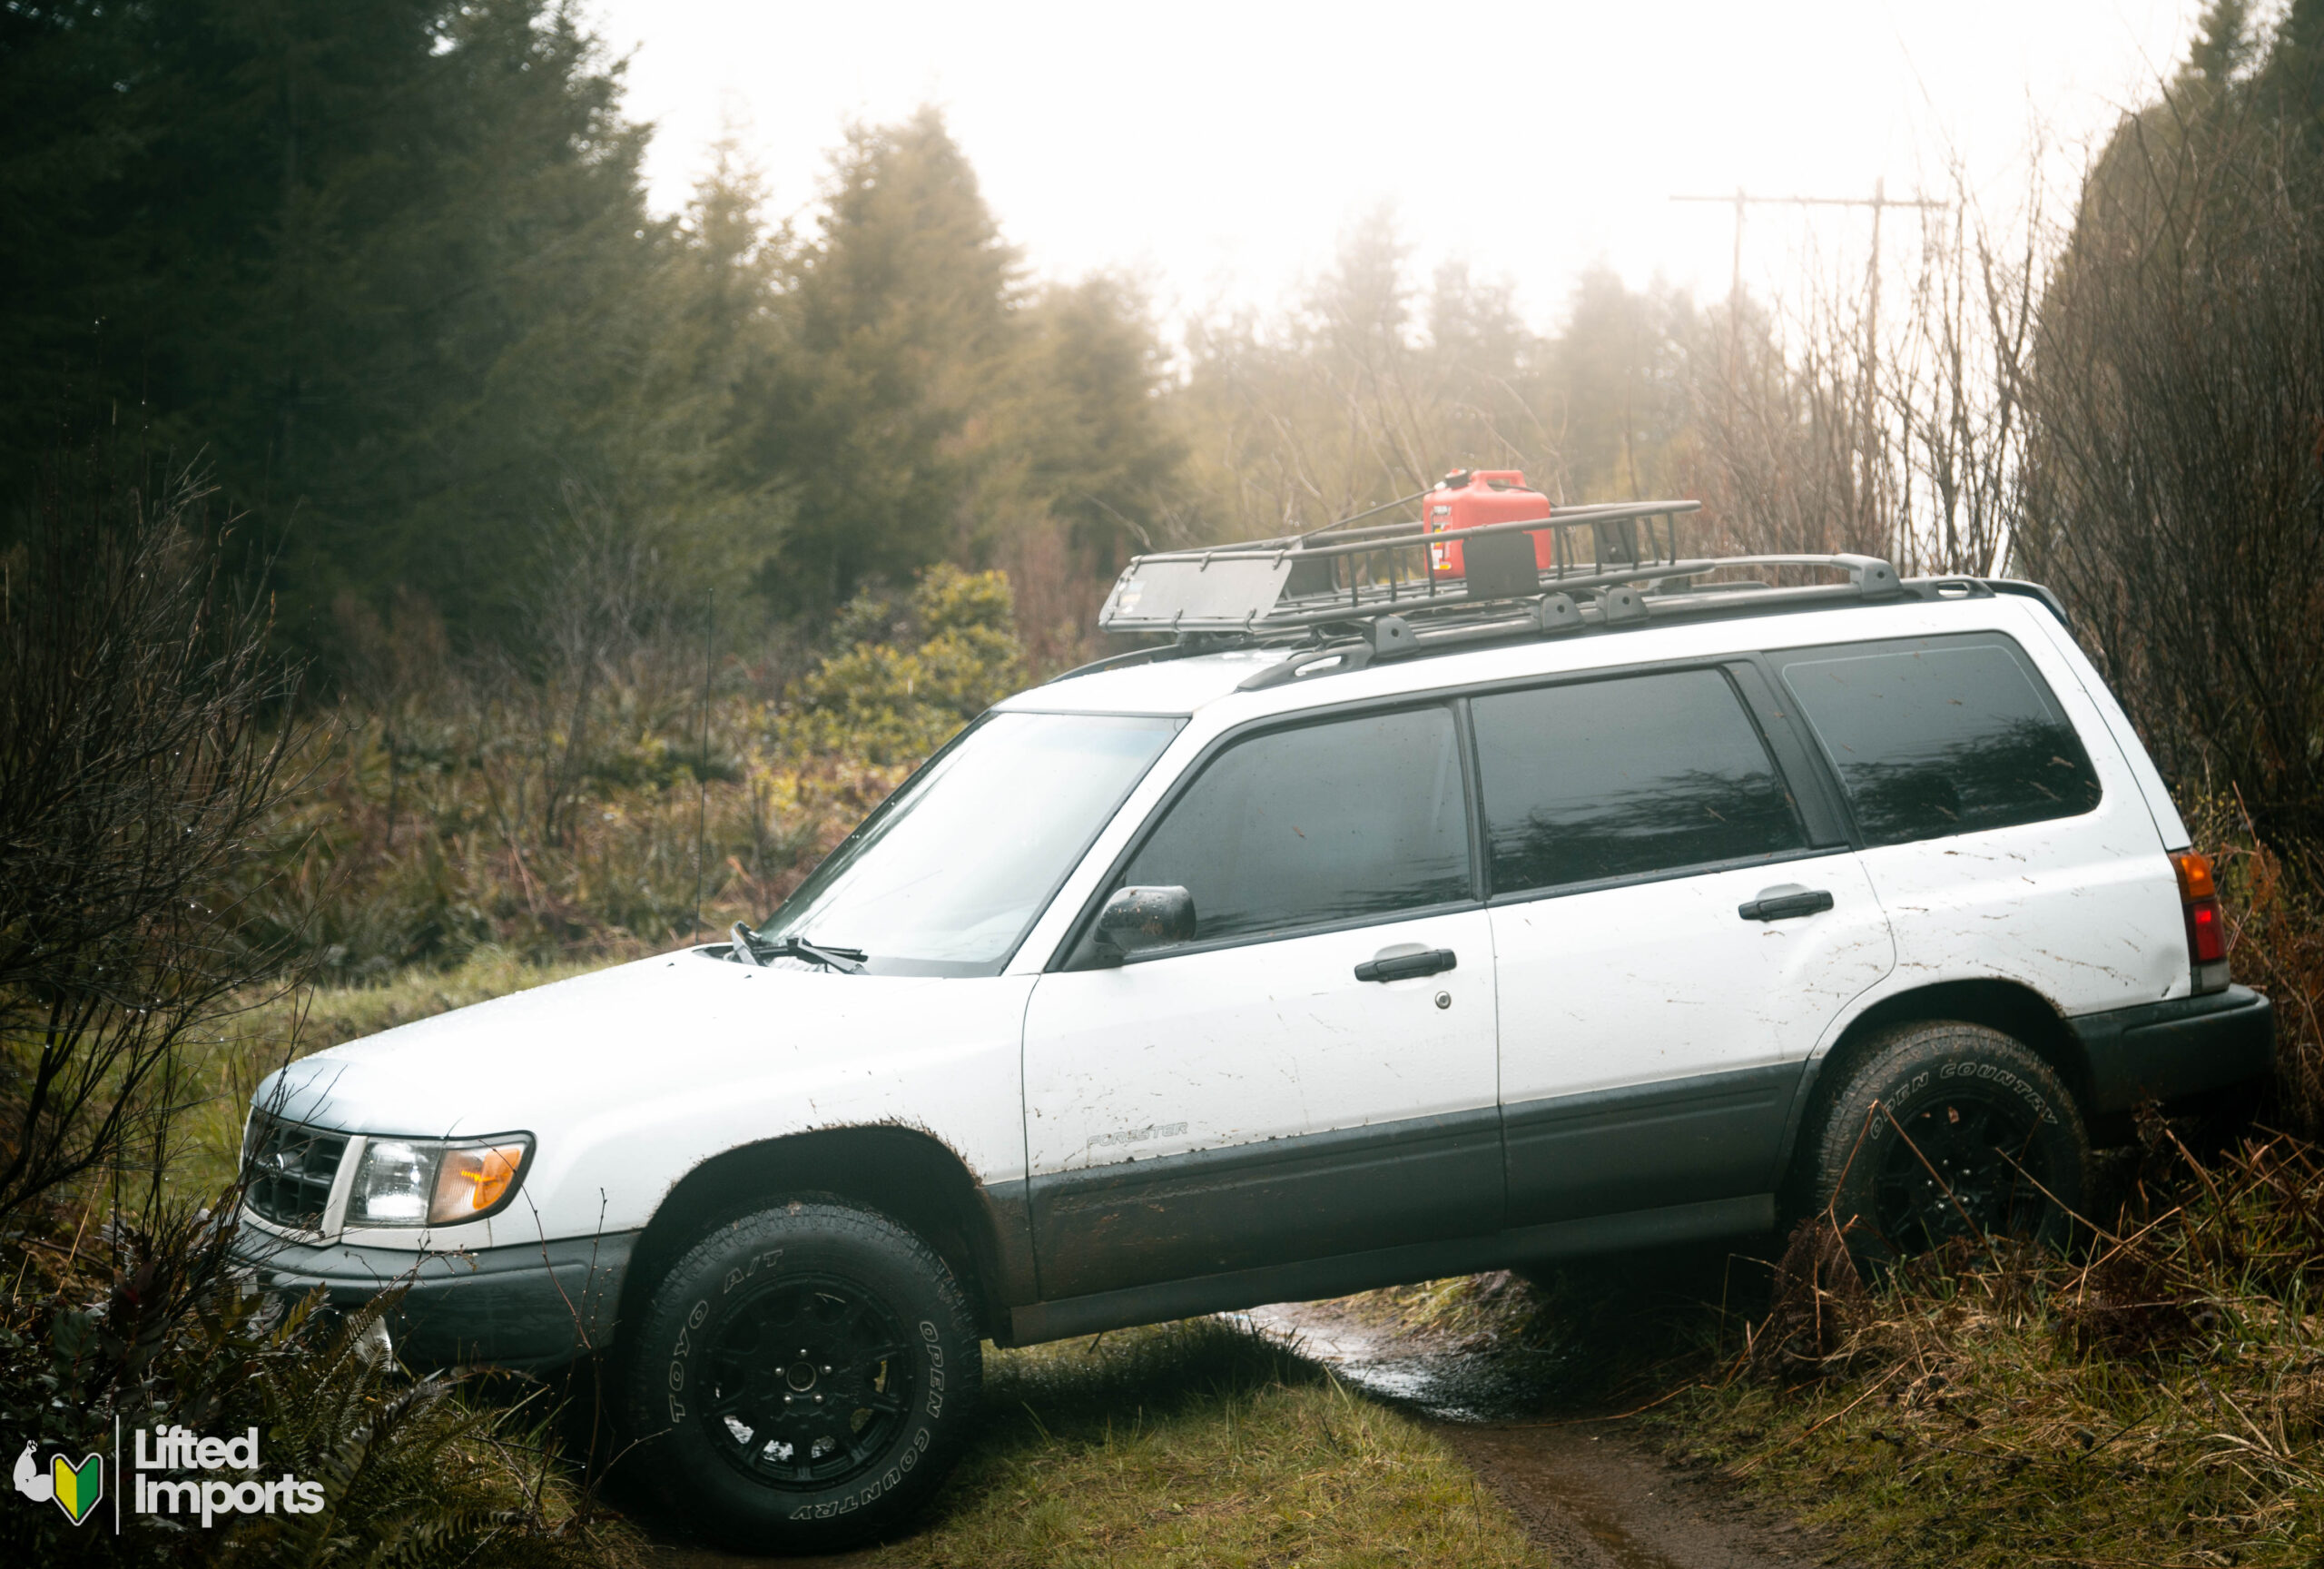 Lifted subaru forester with off road tires and method race wheels and a gas can on the roof rack